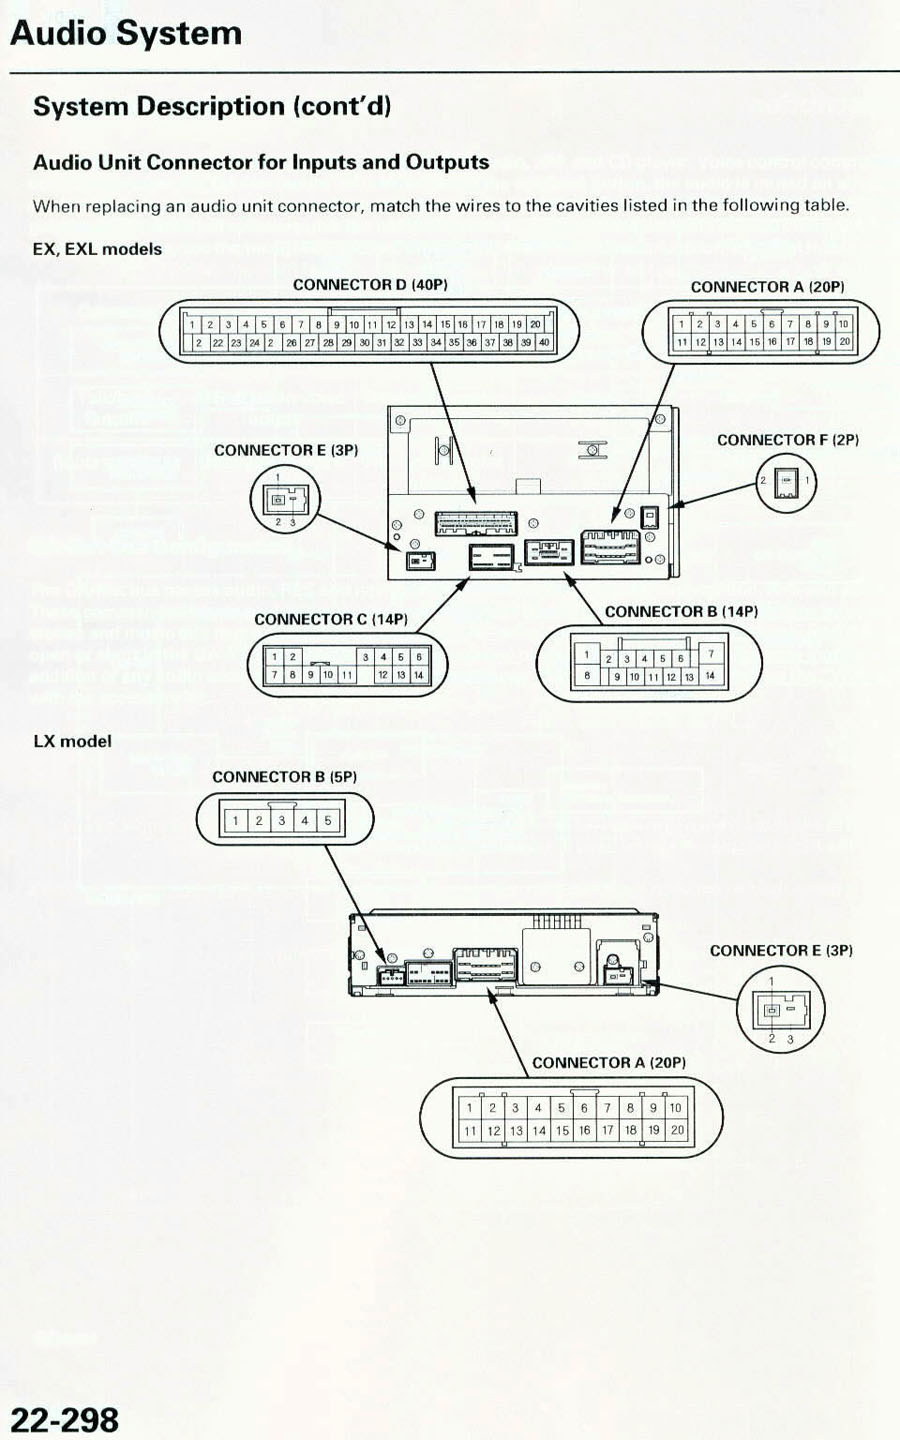 32969d1200063279 re factory subwoofer aftermarket hu audio_connector 2006 re factory subwoofer and aftermarket hu honda pilot honda 2004 honda pilot radio wiring diagram at webbmarketing.co